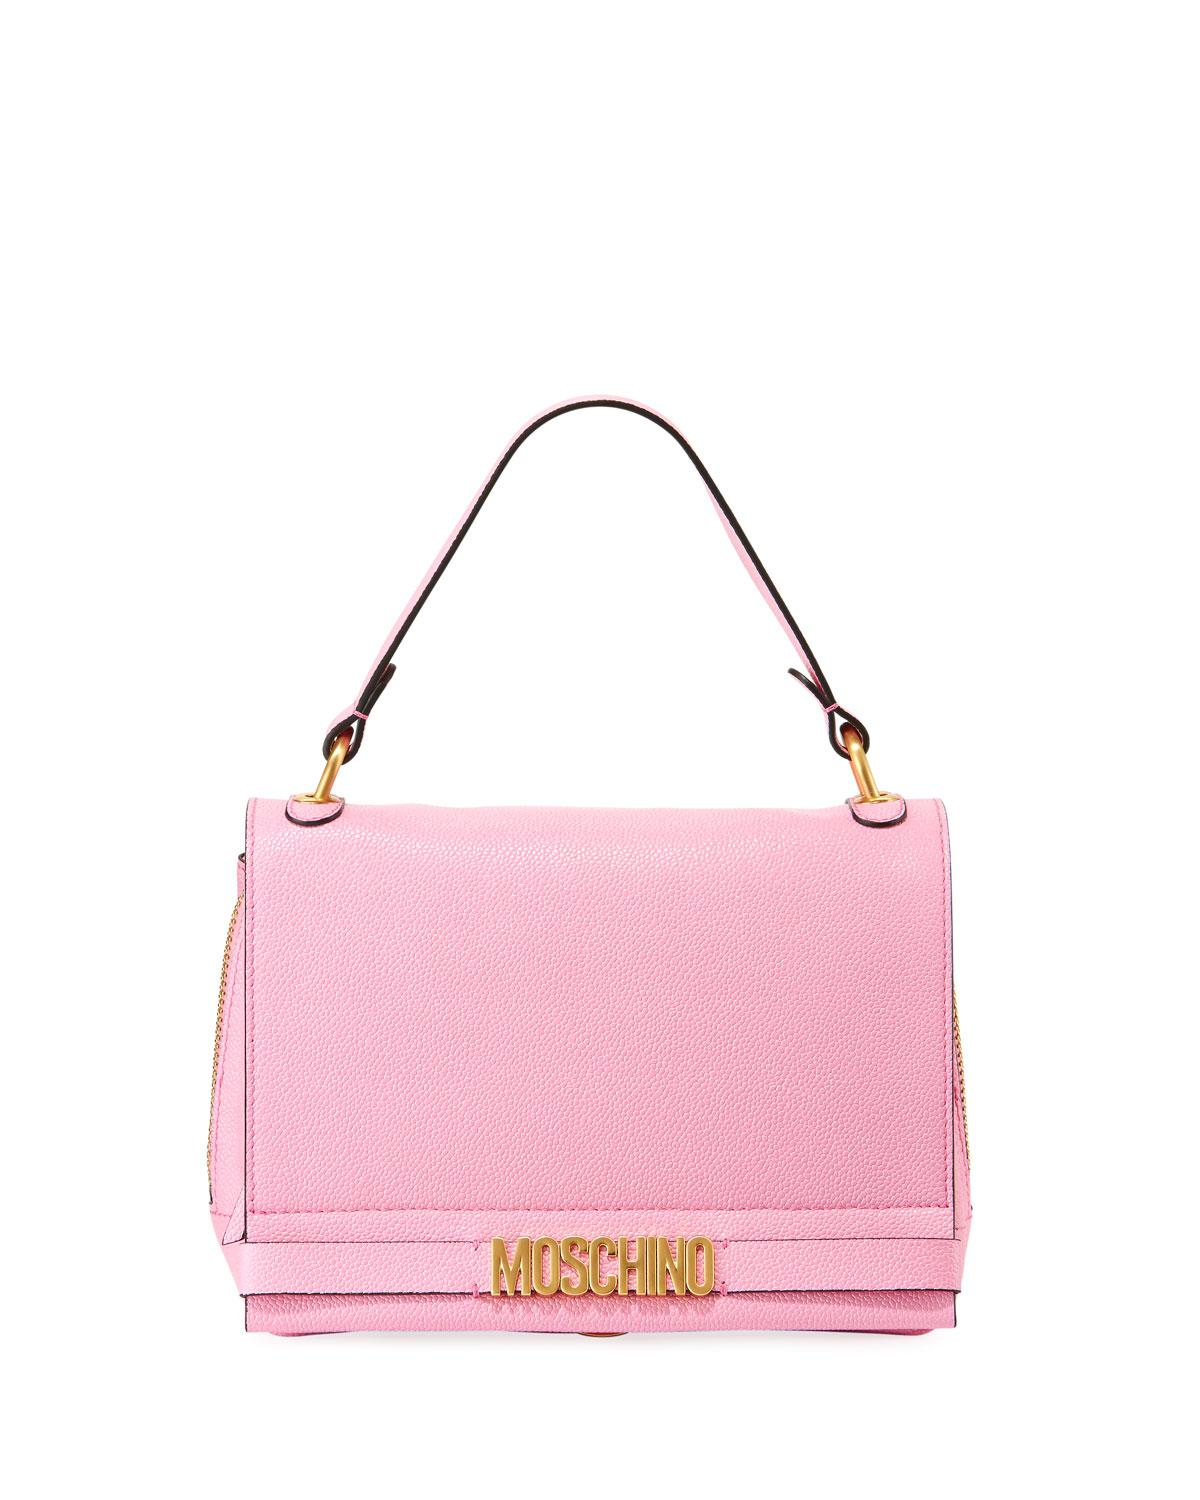 11be49f82b1 Moschino - Pink Medium Leather Shoulder Bag - Lyst. View fullscreen